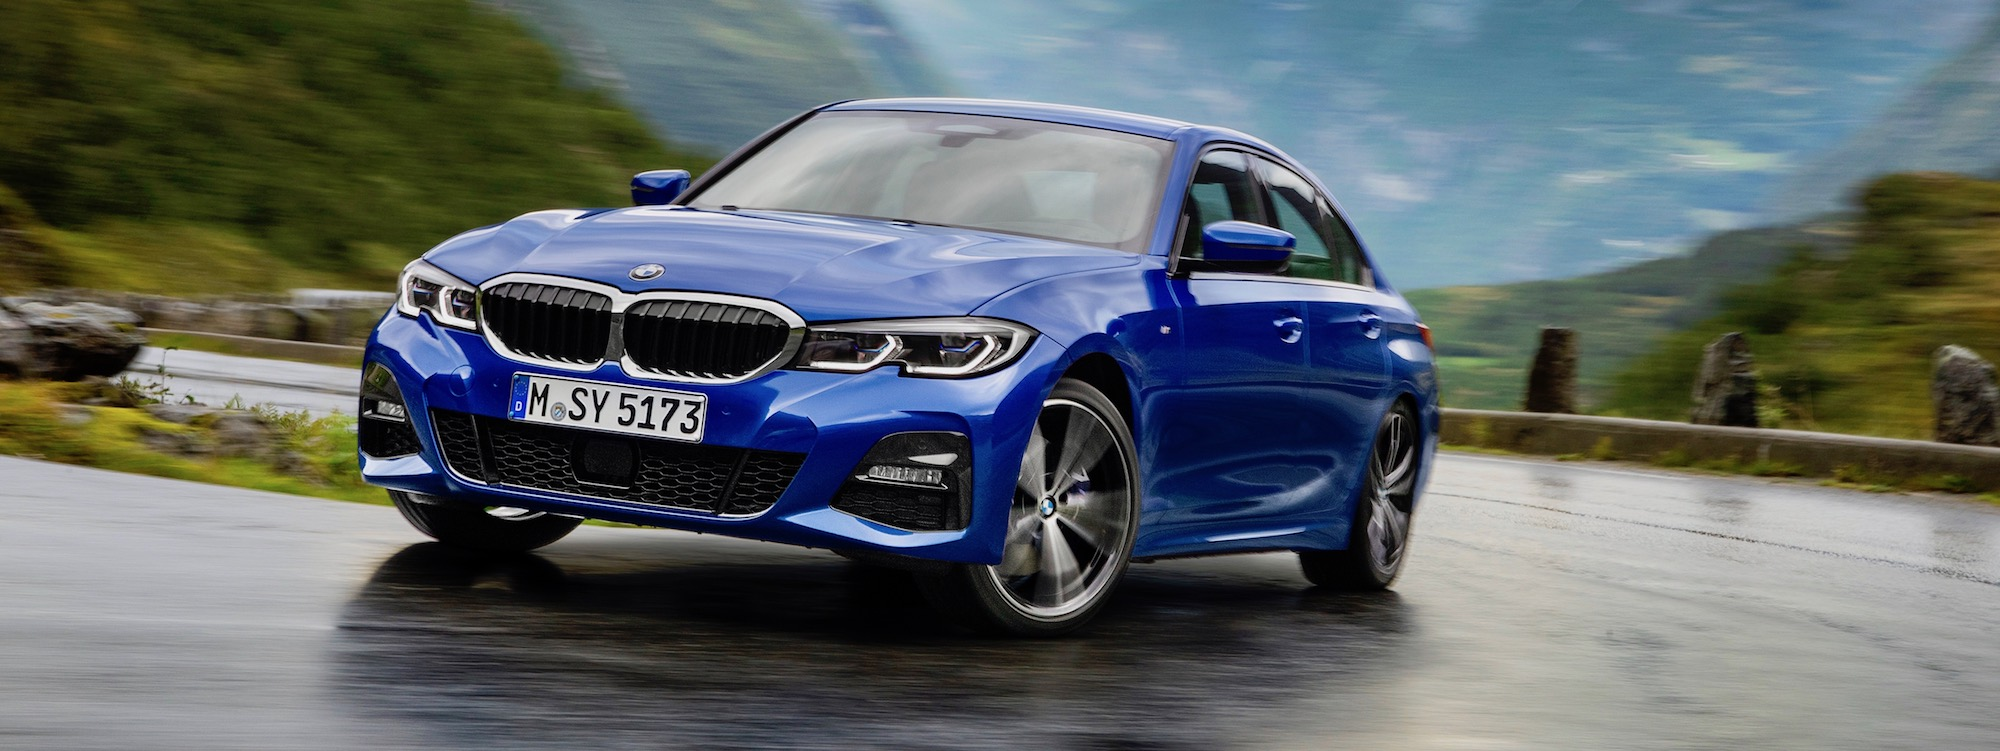 2019 BMW 3 Series Sedan: Can It Regain Its Former Glory?